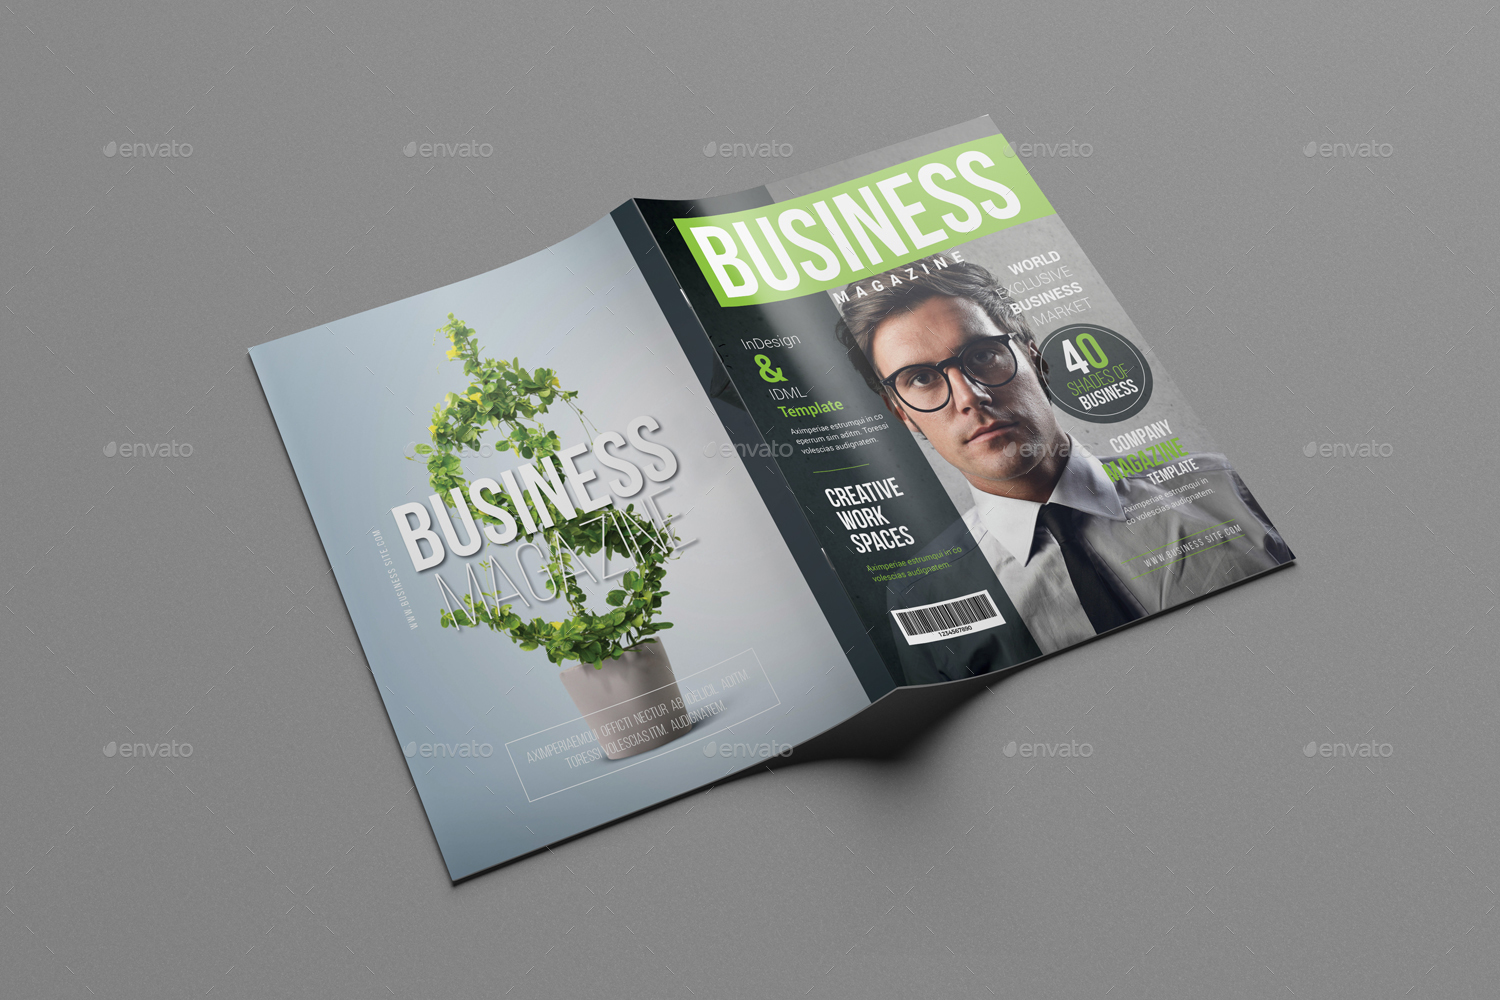 Business magazine template by designsoul14 graphicriver business magazine template magazines print templates preview image setpreview image01g accmission Image collections